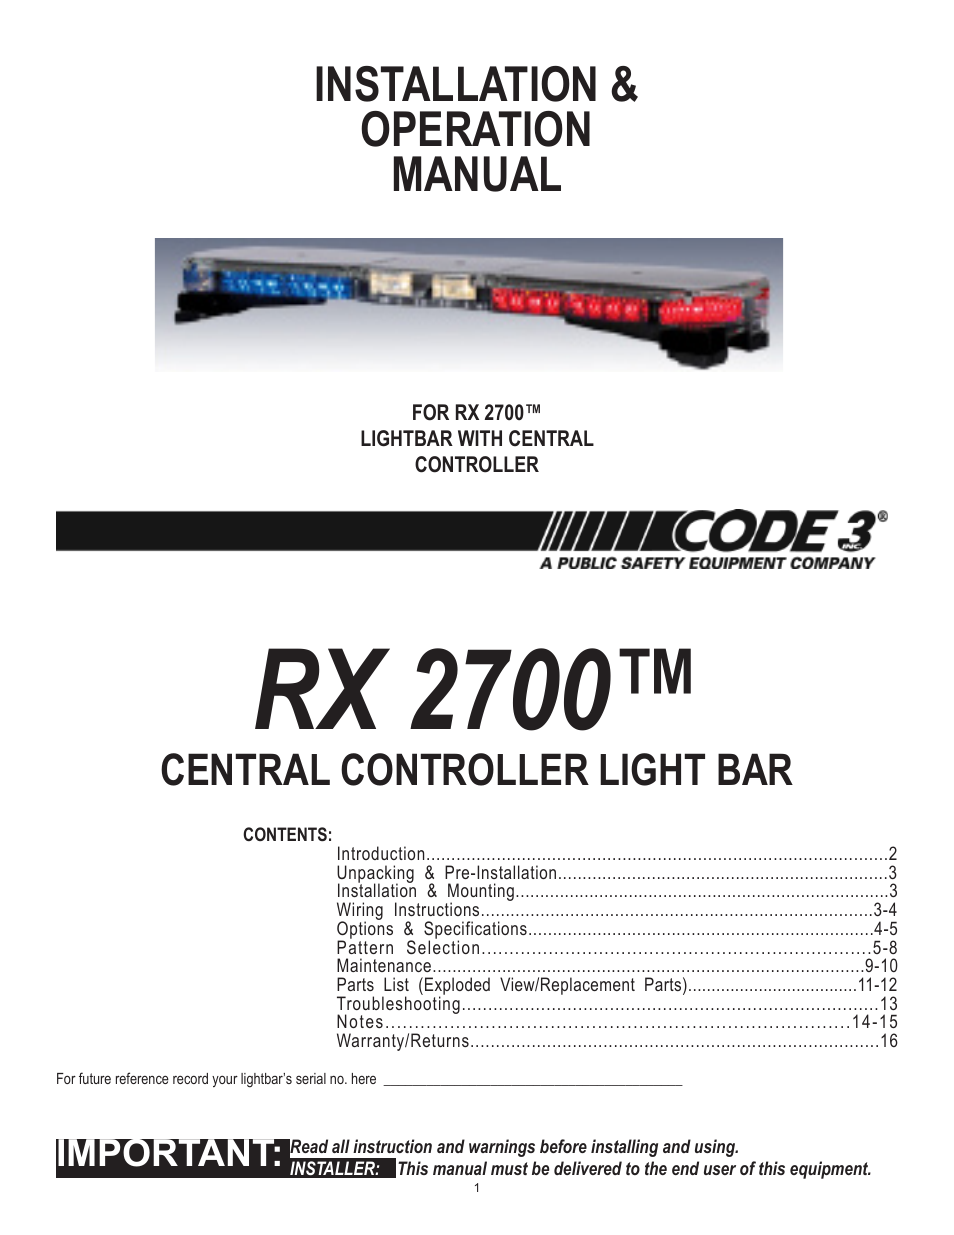 code 3 rx 2700cc page1 code 3 rx 2700cc user manual 16 pages code 3 arrowstick wiring diagram at virtualis.co